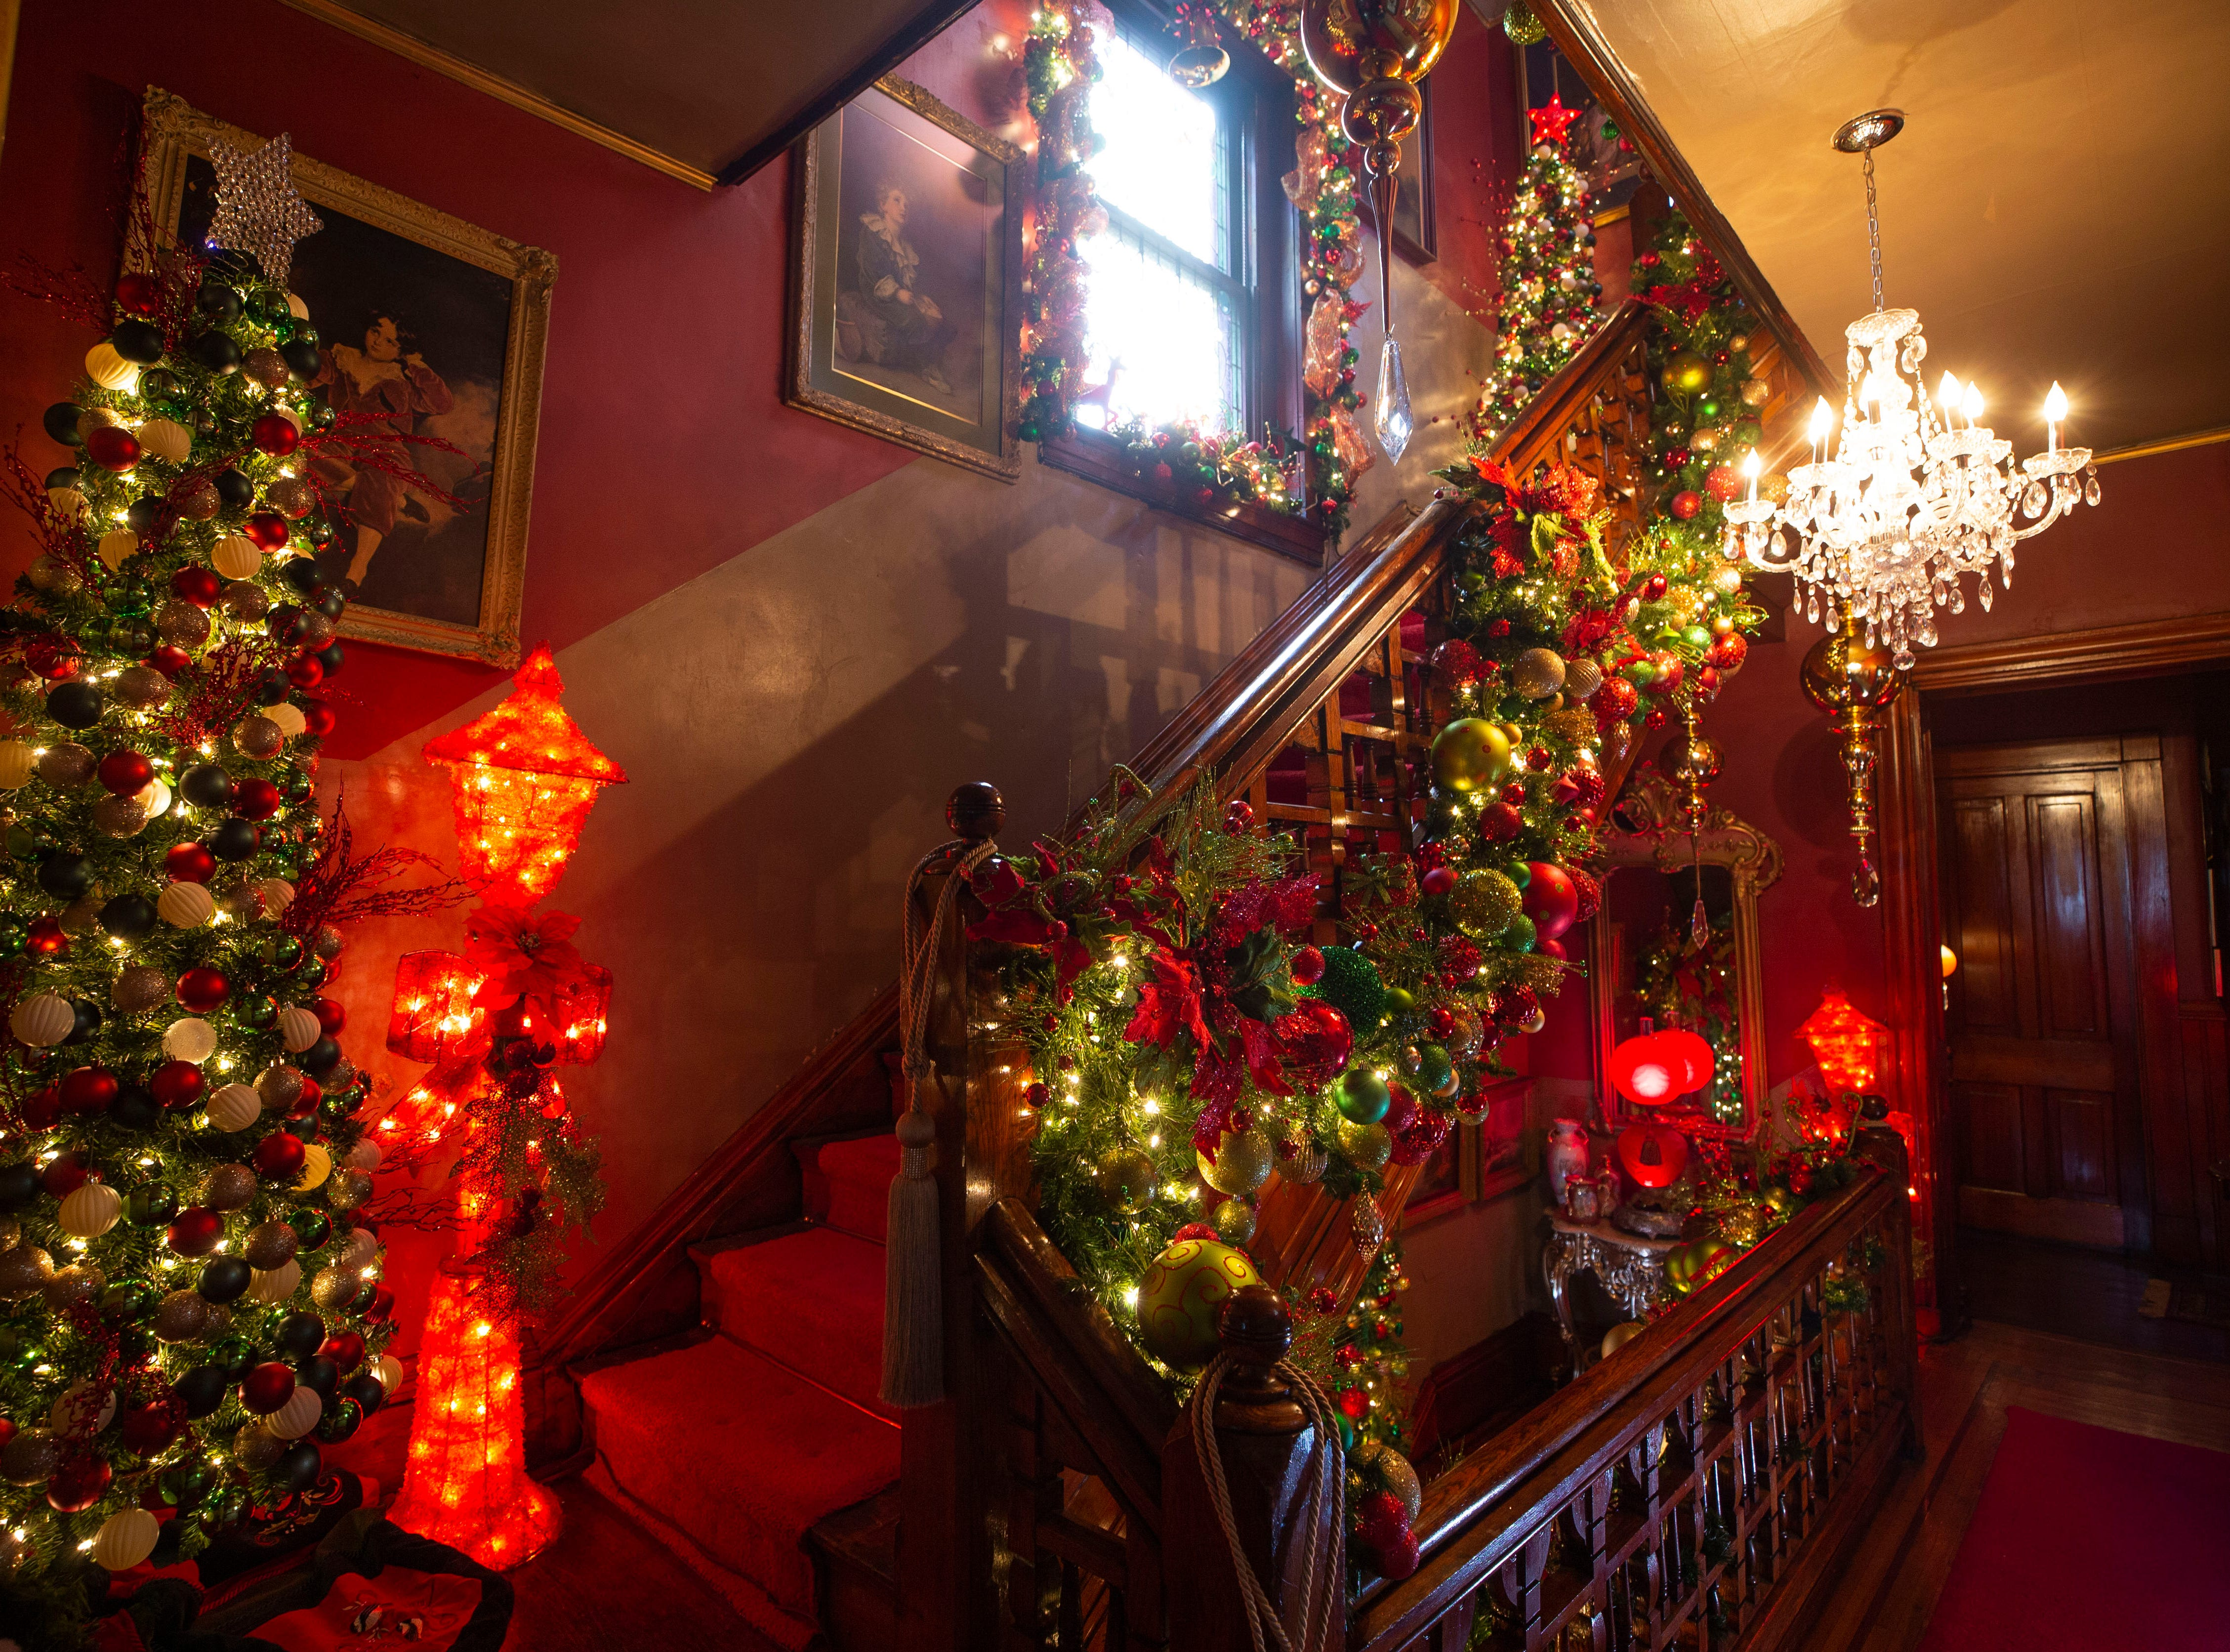 A three story staircase with over 7,000 ornaments displayed in garland.